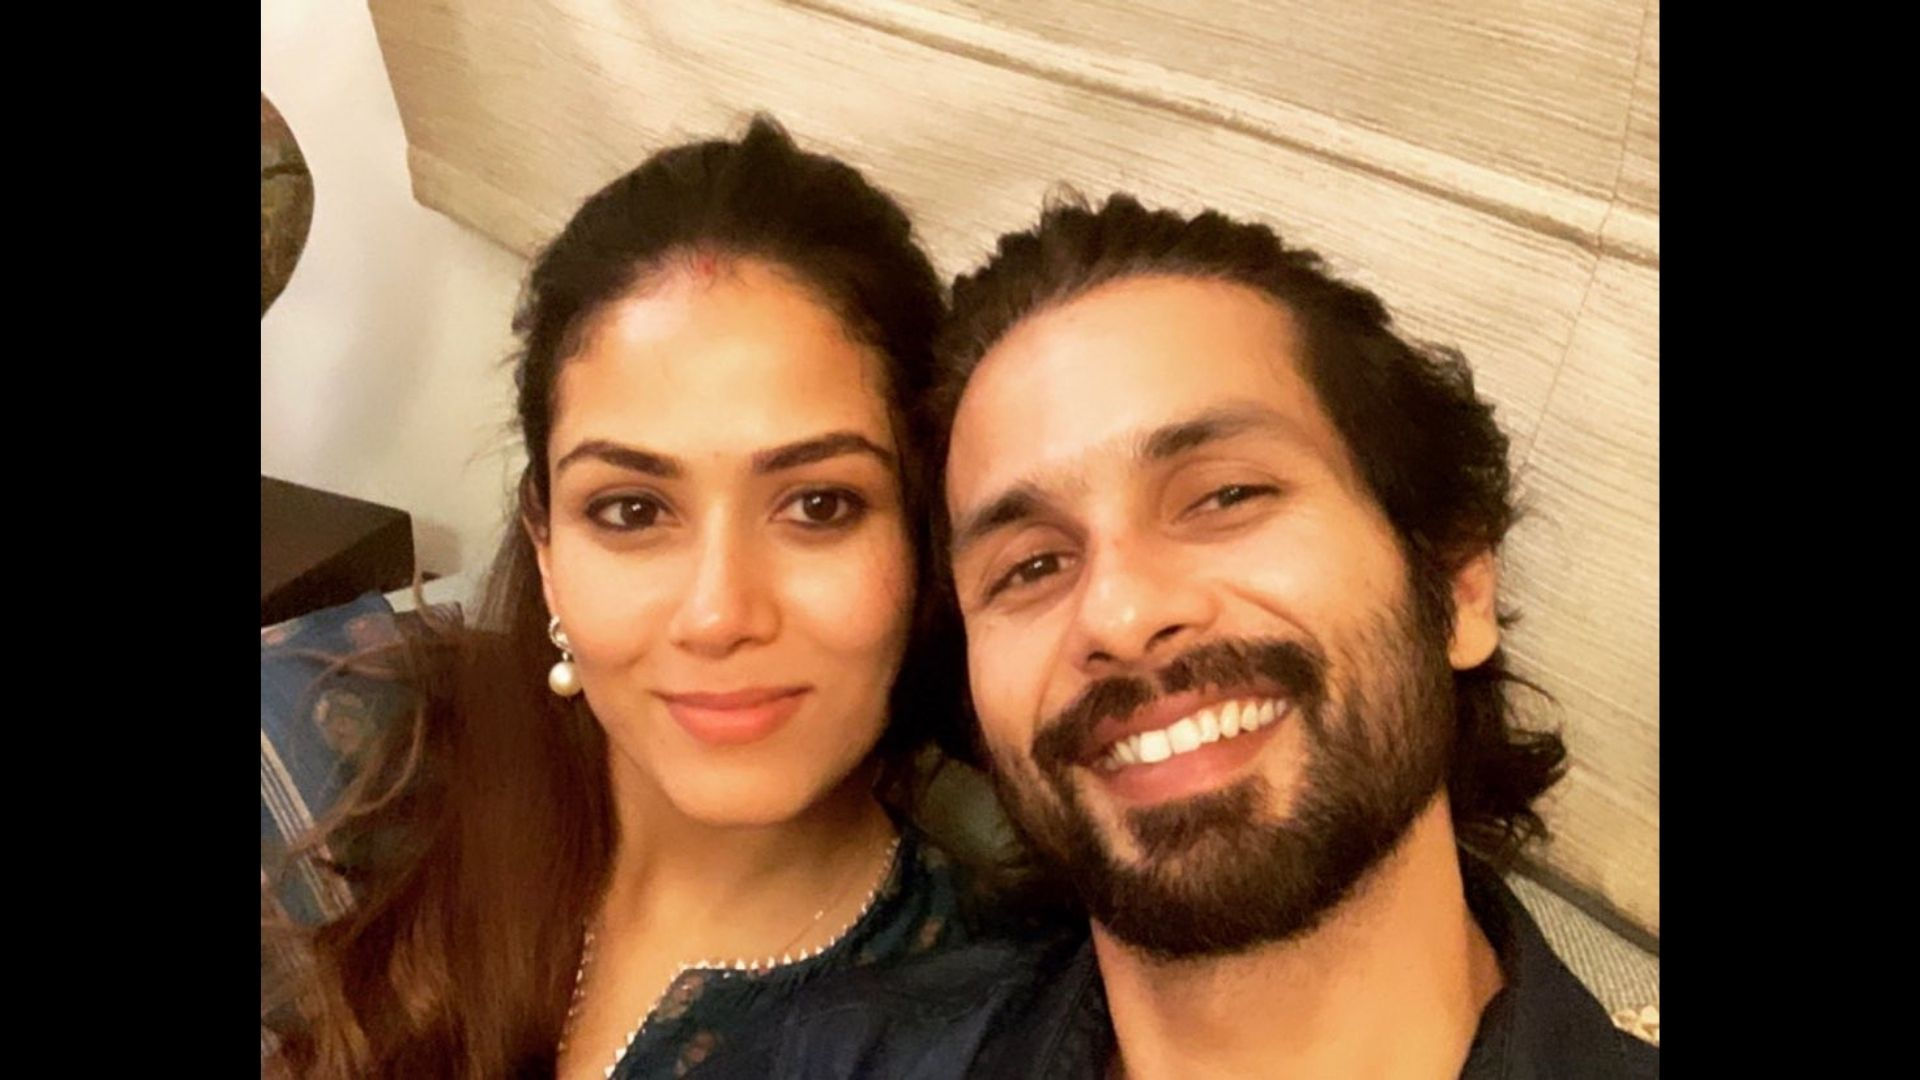 Shahid Kapoor's Wife Mira Kapoor Shares A Video Of Doing Yoga On Social Media With A Very Strong Message